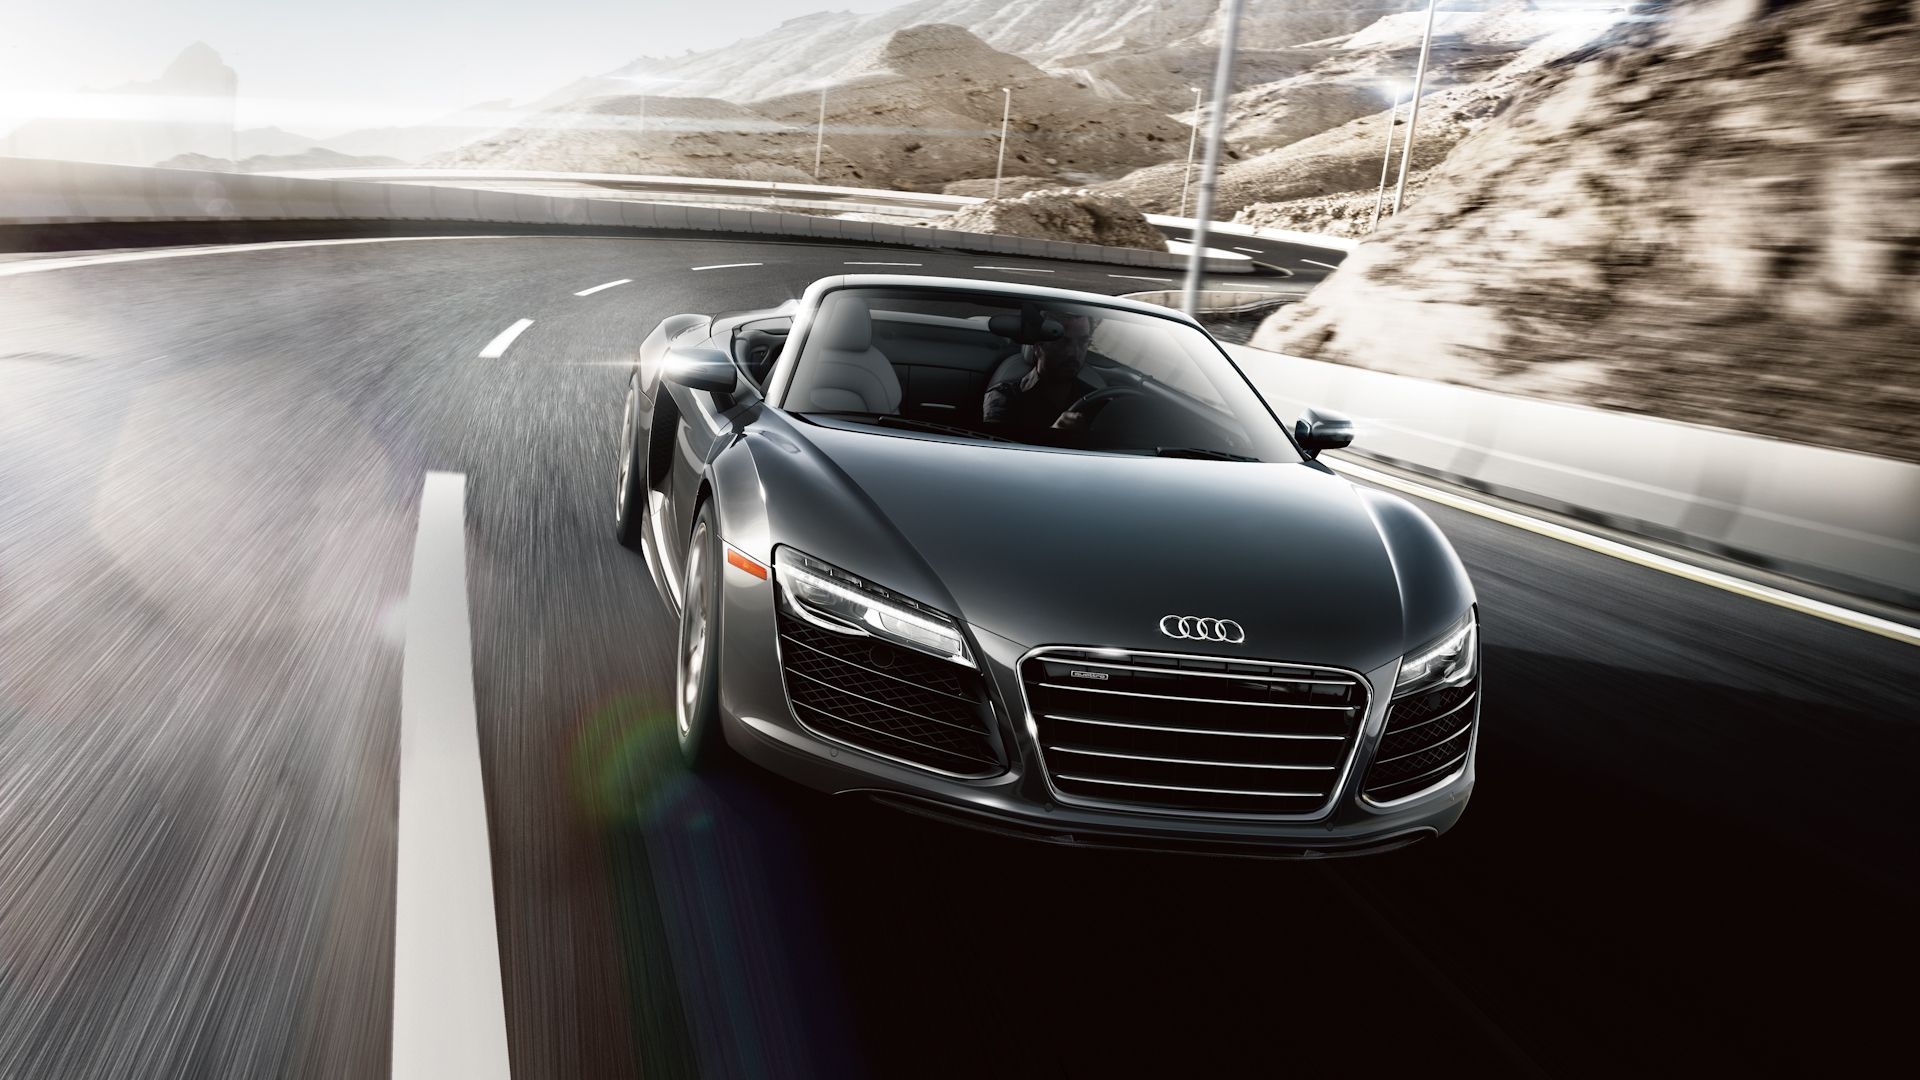 audi r8 2015 hd wallpapers free download